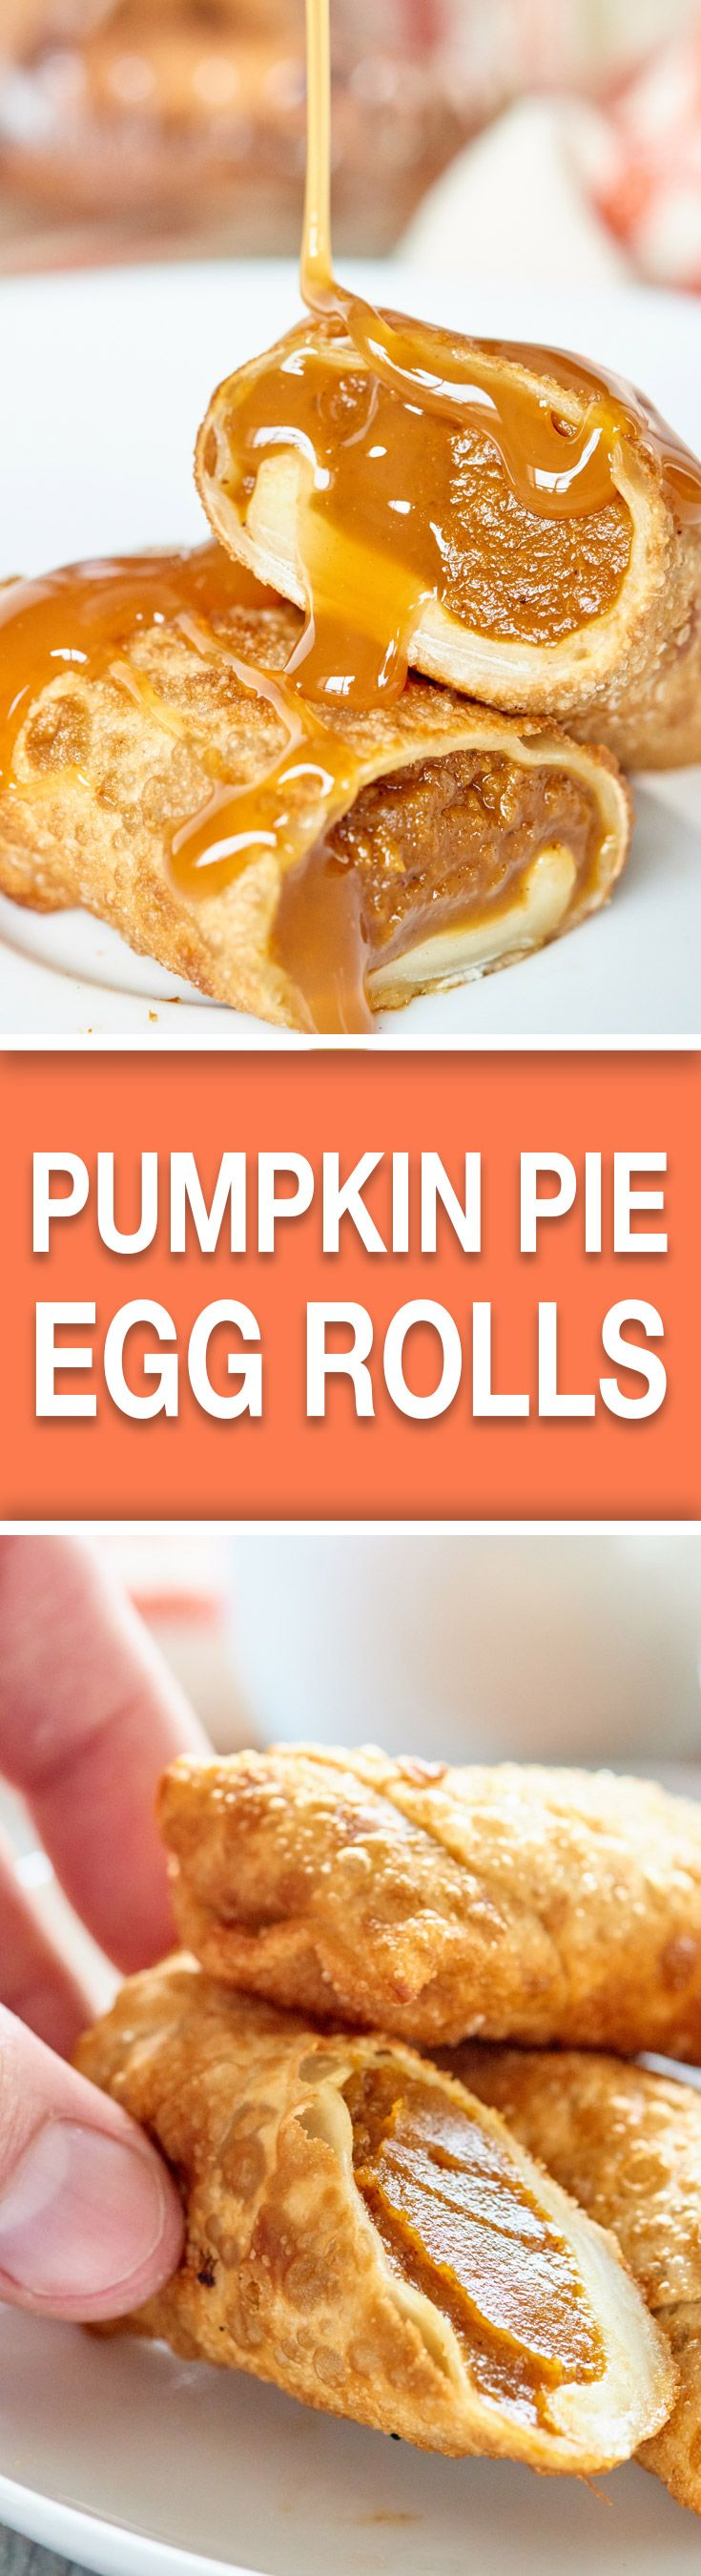 These Pumpkin Pie Egg Rolls are a fried, fun twist on a classic & served w/ white chocolate cool whip and ooey-gooey caramel! A new tradition has been born! showmetheyummy.com #pumpkin #dessert